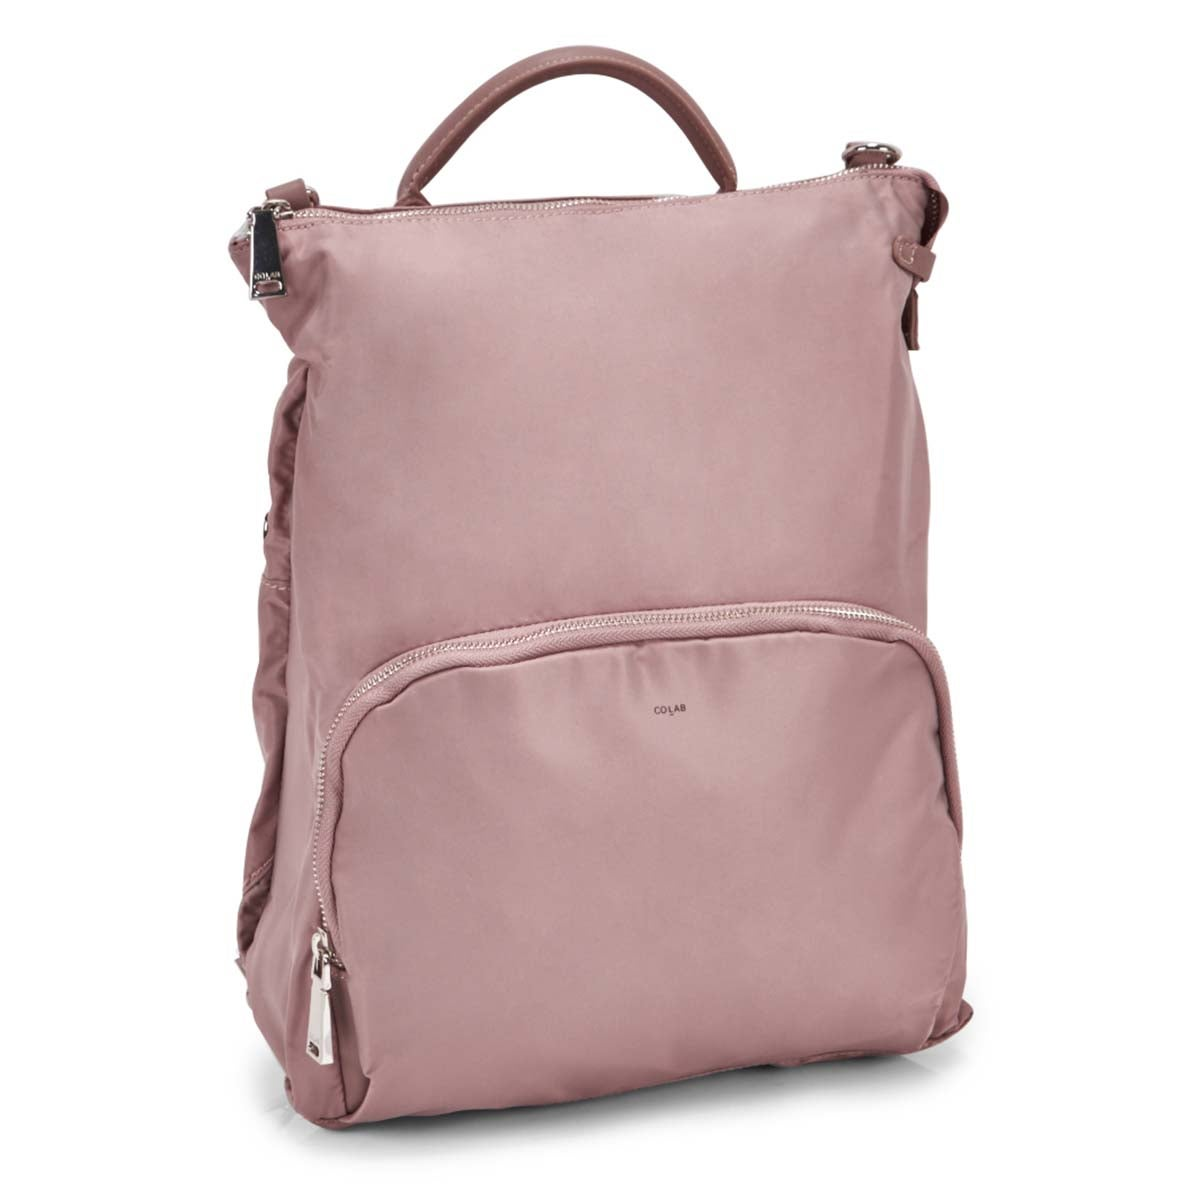 Women's NELLIE dusty mauve convertible backpack